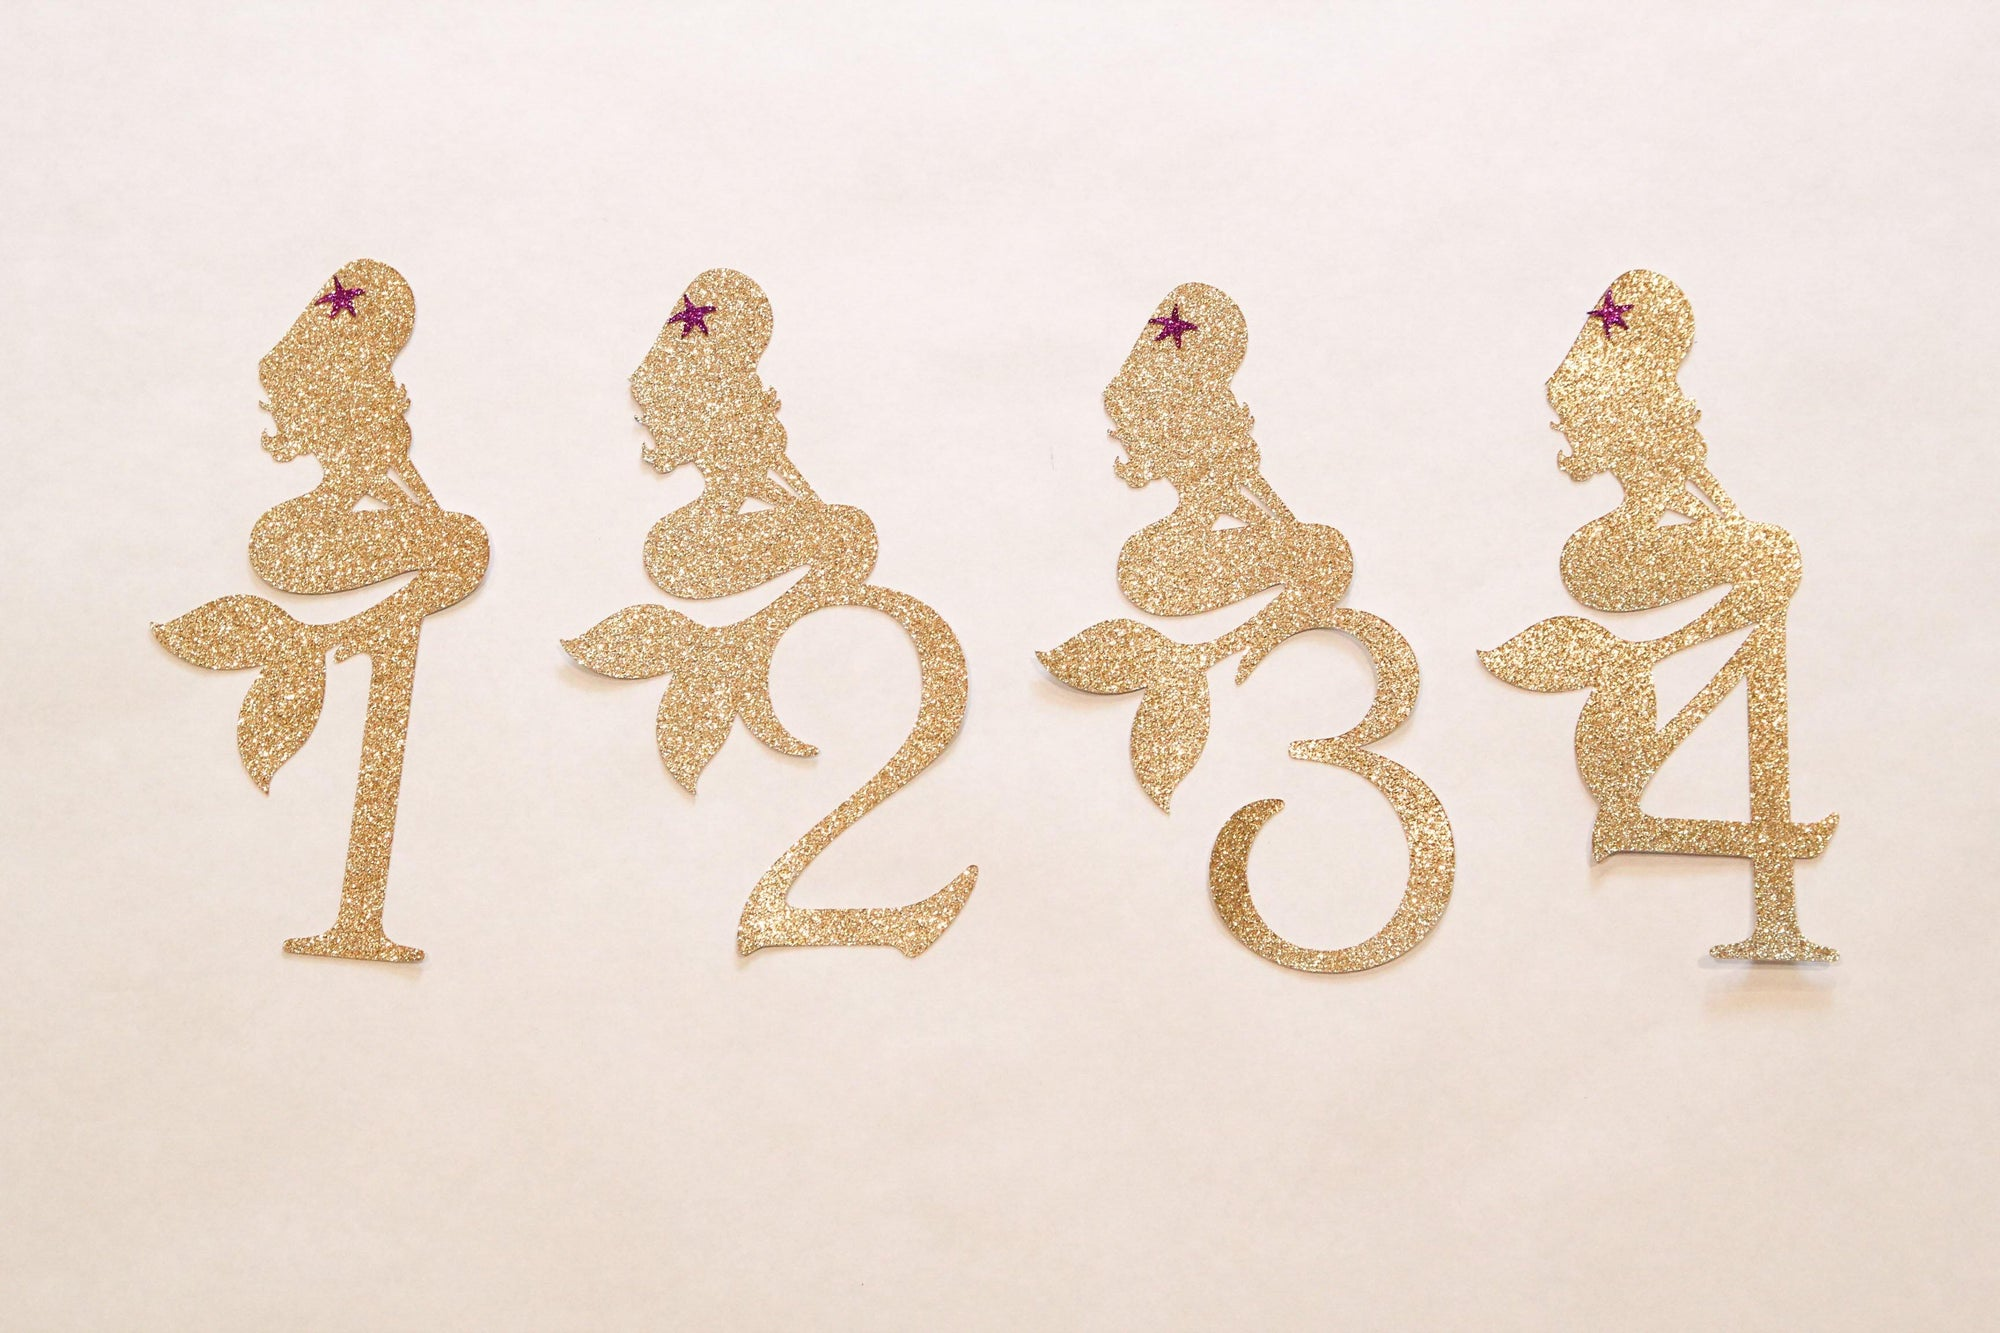 Gold Glittered Mermaid Number Die-cuts with Fuchsia Star 1-18 (1 piece)